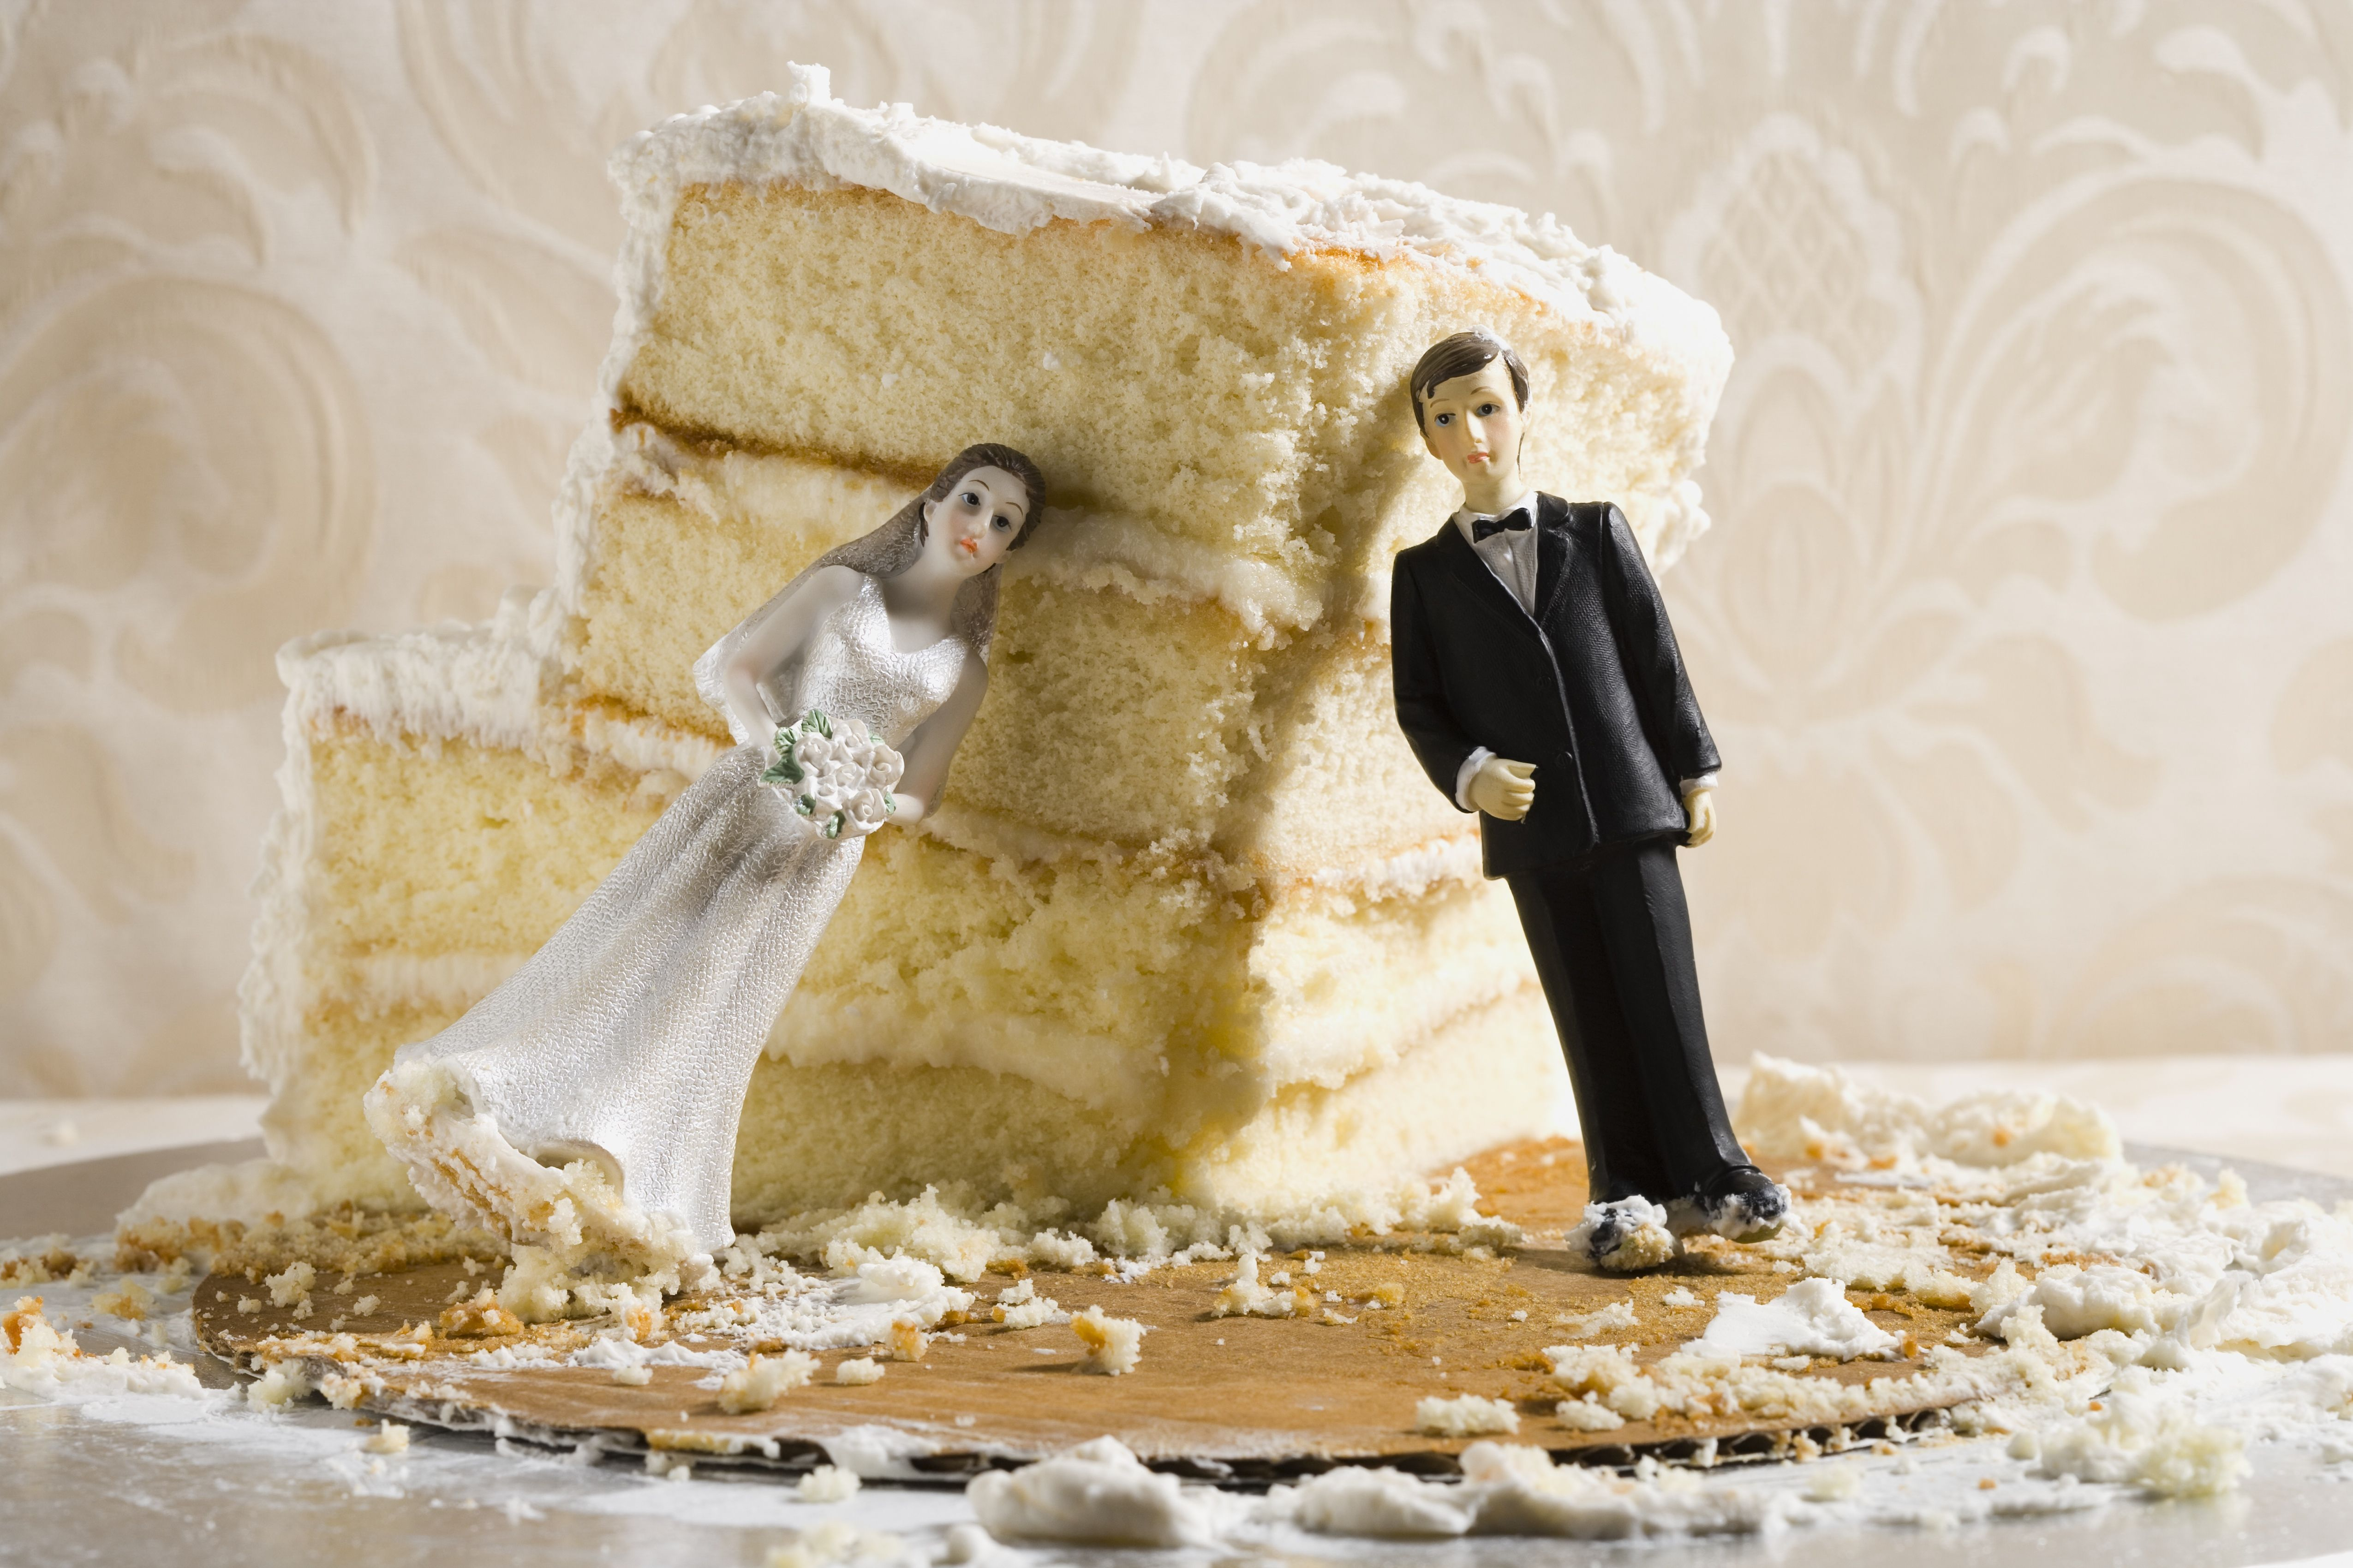 Wedding Caterers Craziest Requests Wedding Caterer Horror Stories